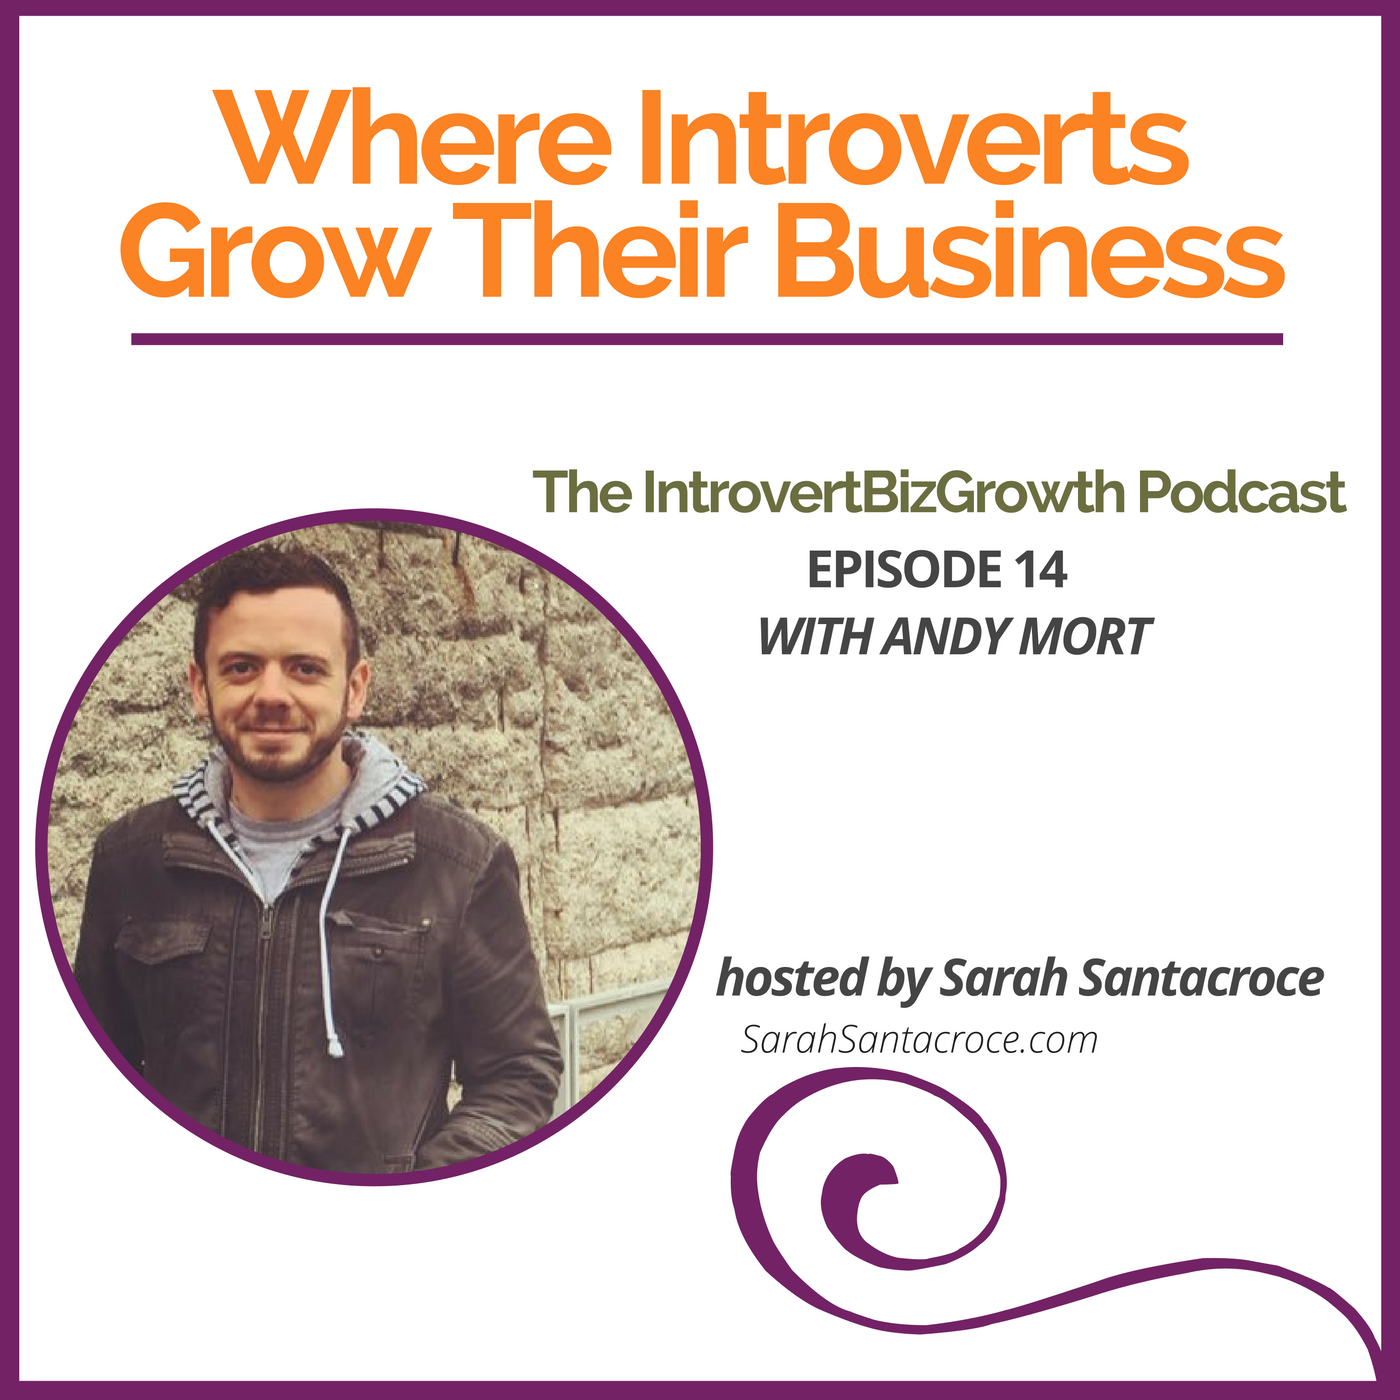 BizGrowth Podcast with Andy Mort